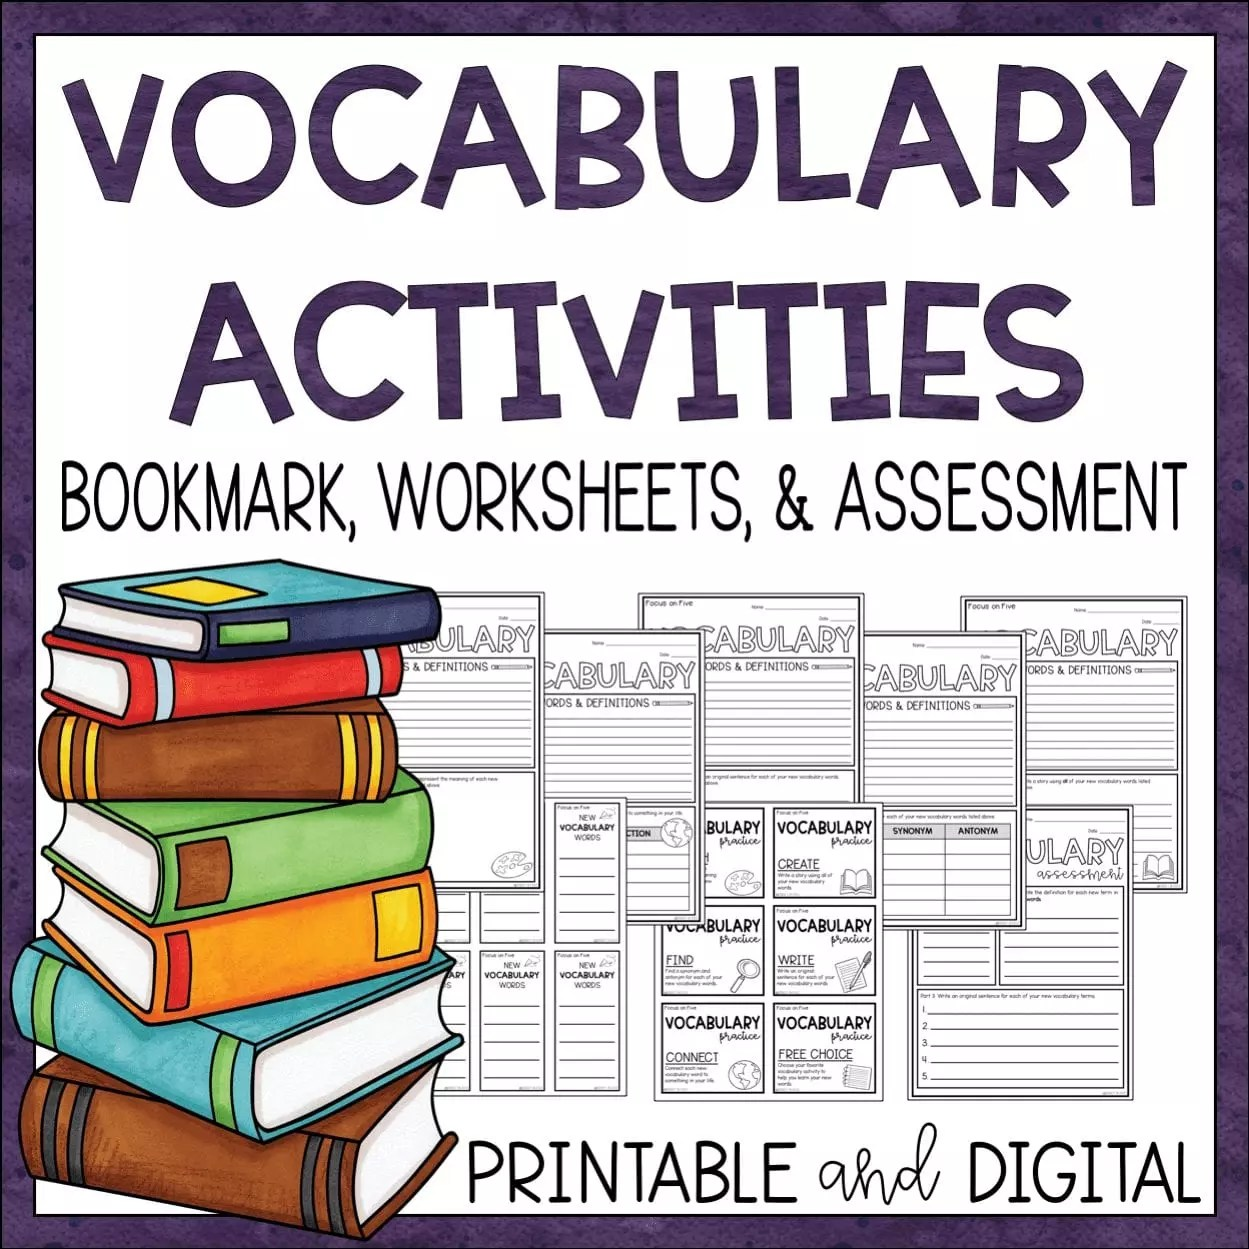 3 Easy Steps For Tackling Academic Vocabulary